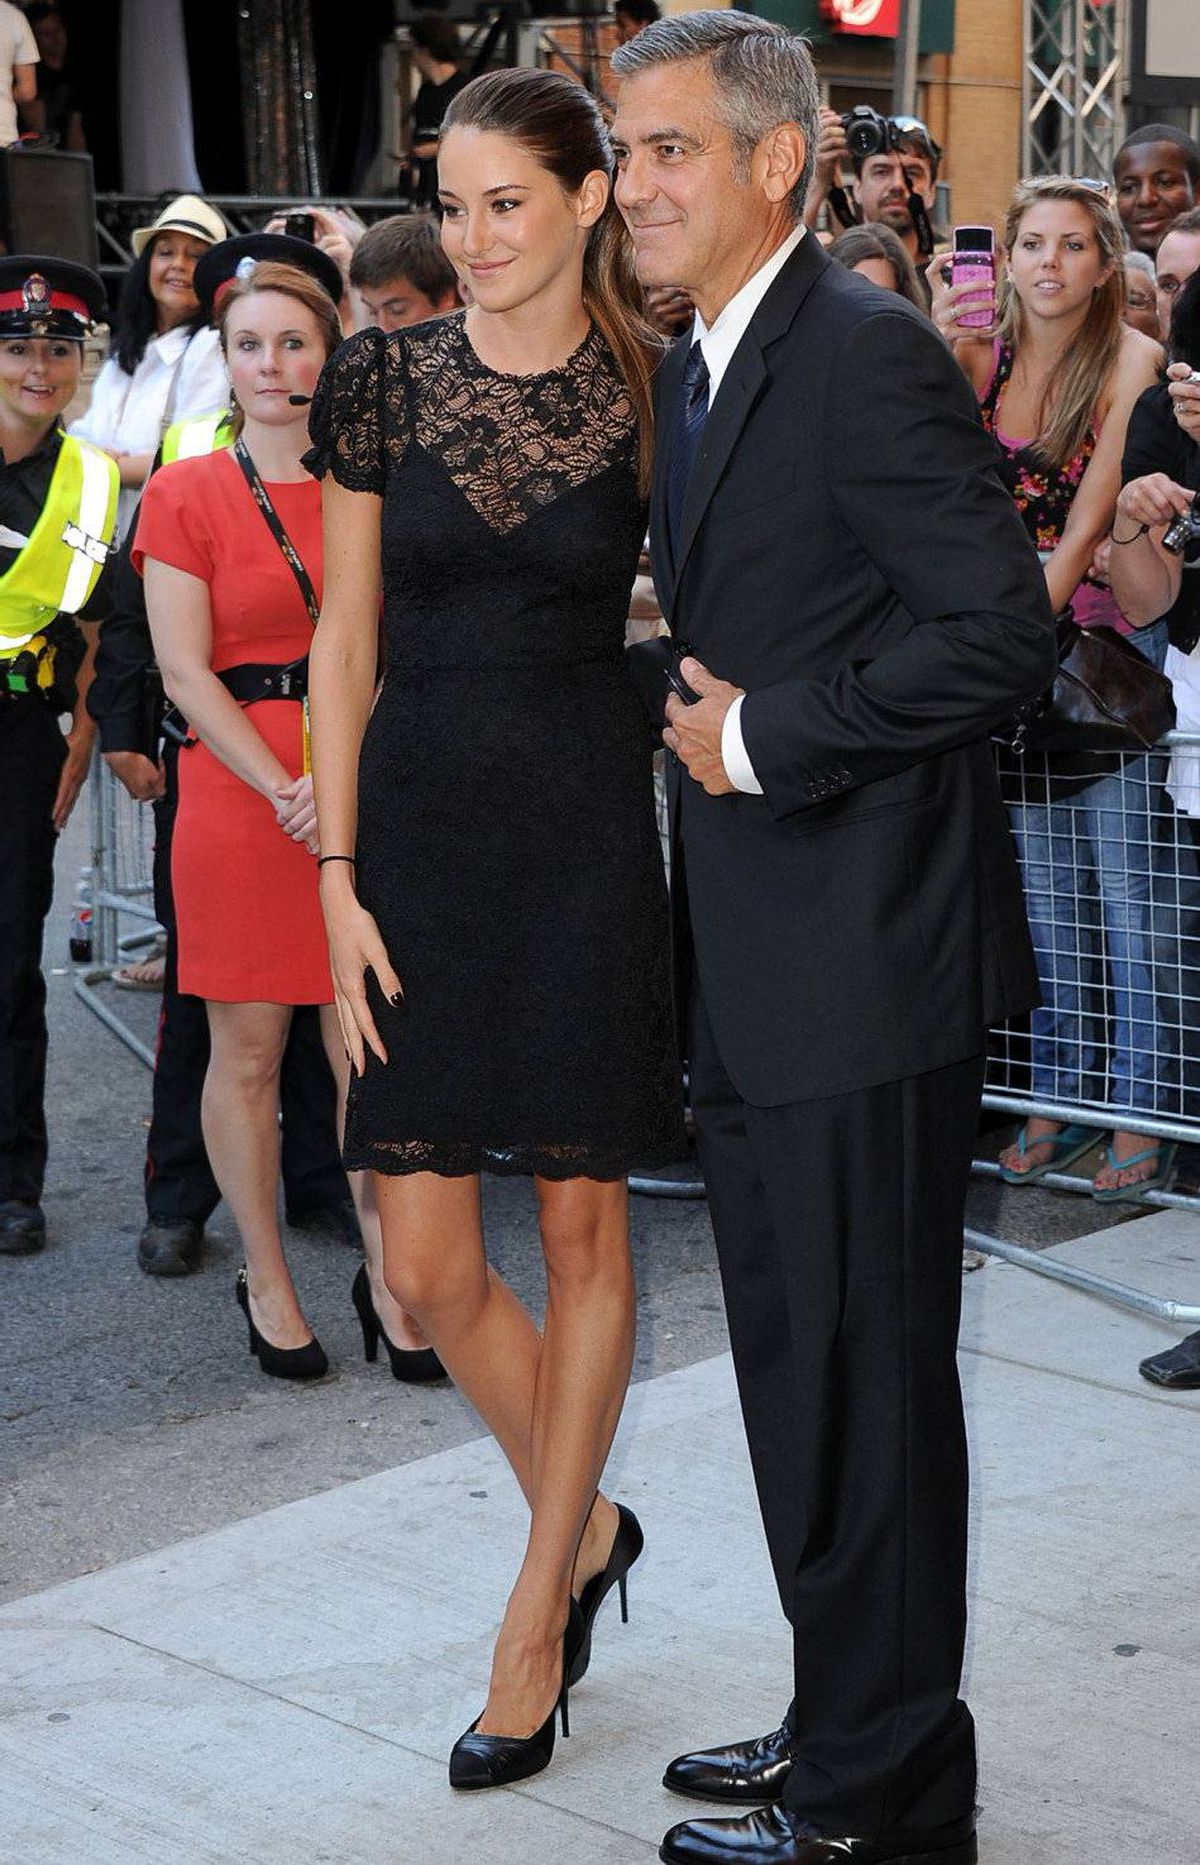 """TORONTO, ON - SEPTEMBER 10: Actors Shailene Woodley (L) and George Clooney arrive at """"The Descendents"""" Premiere at The Elgin during the 2011 Toronto International Film Festival on September 10, 2011 in Toronto, Canada."""